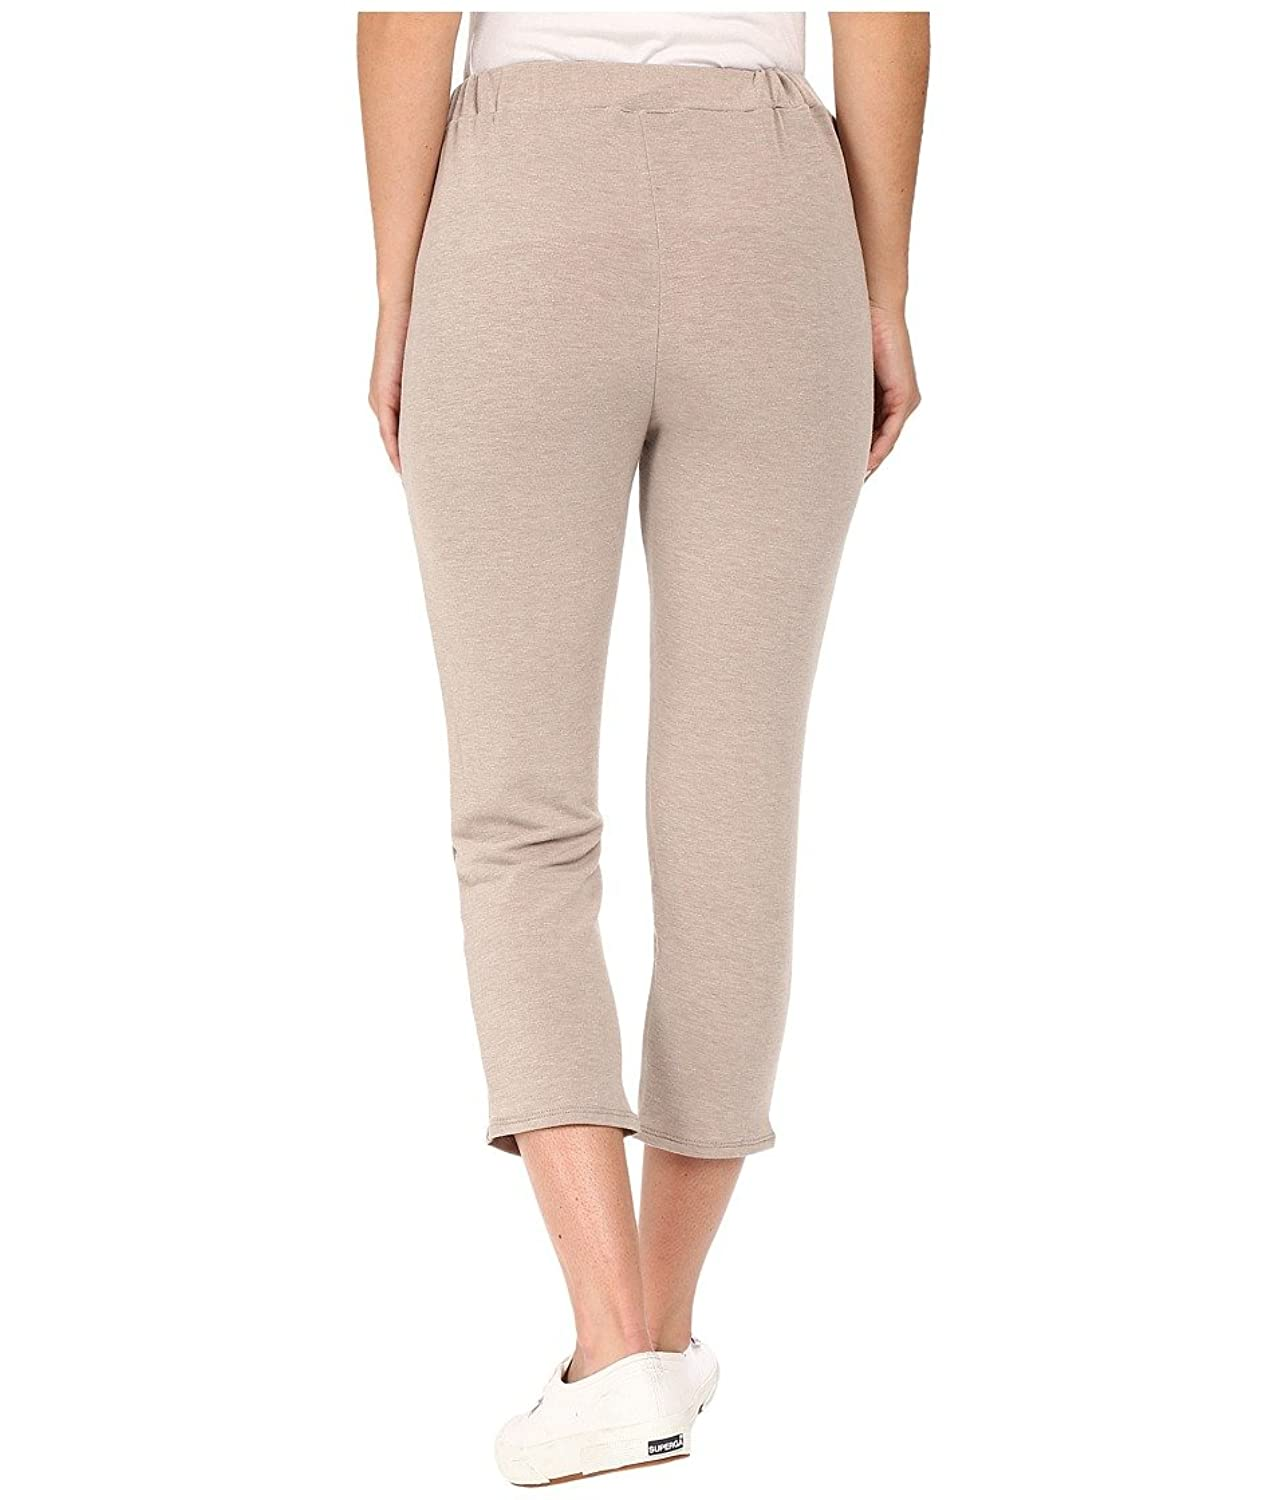 Culture Phit Women's Theresa Pants Taupe Pants